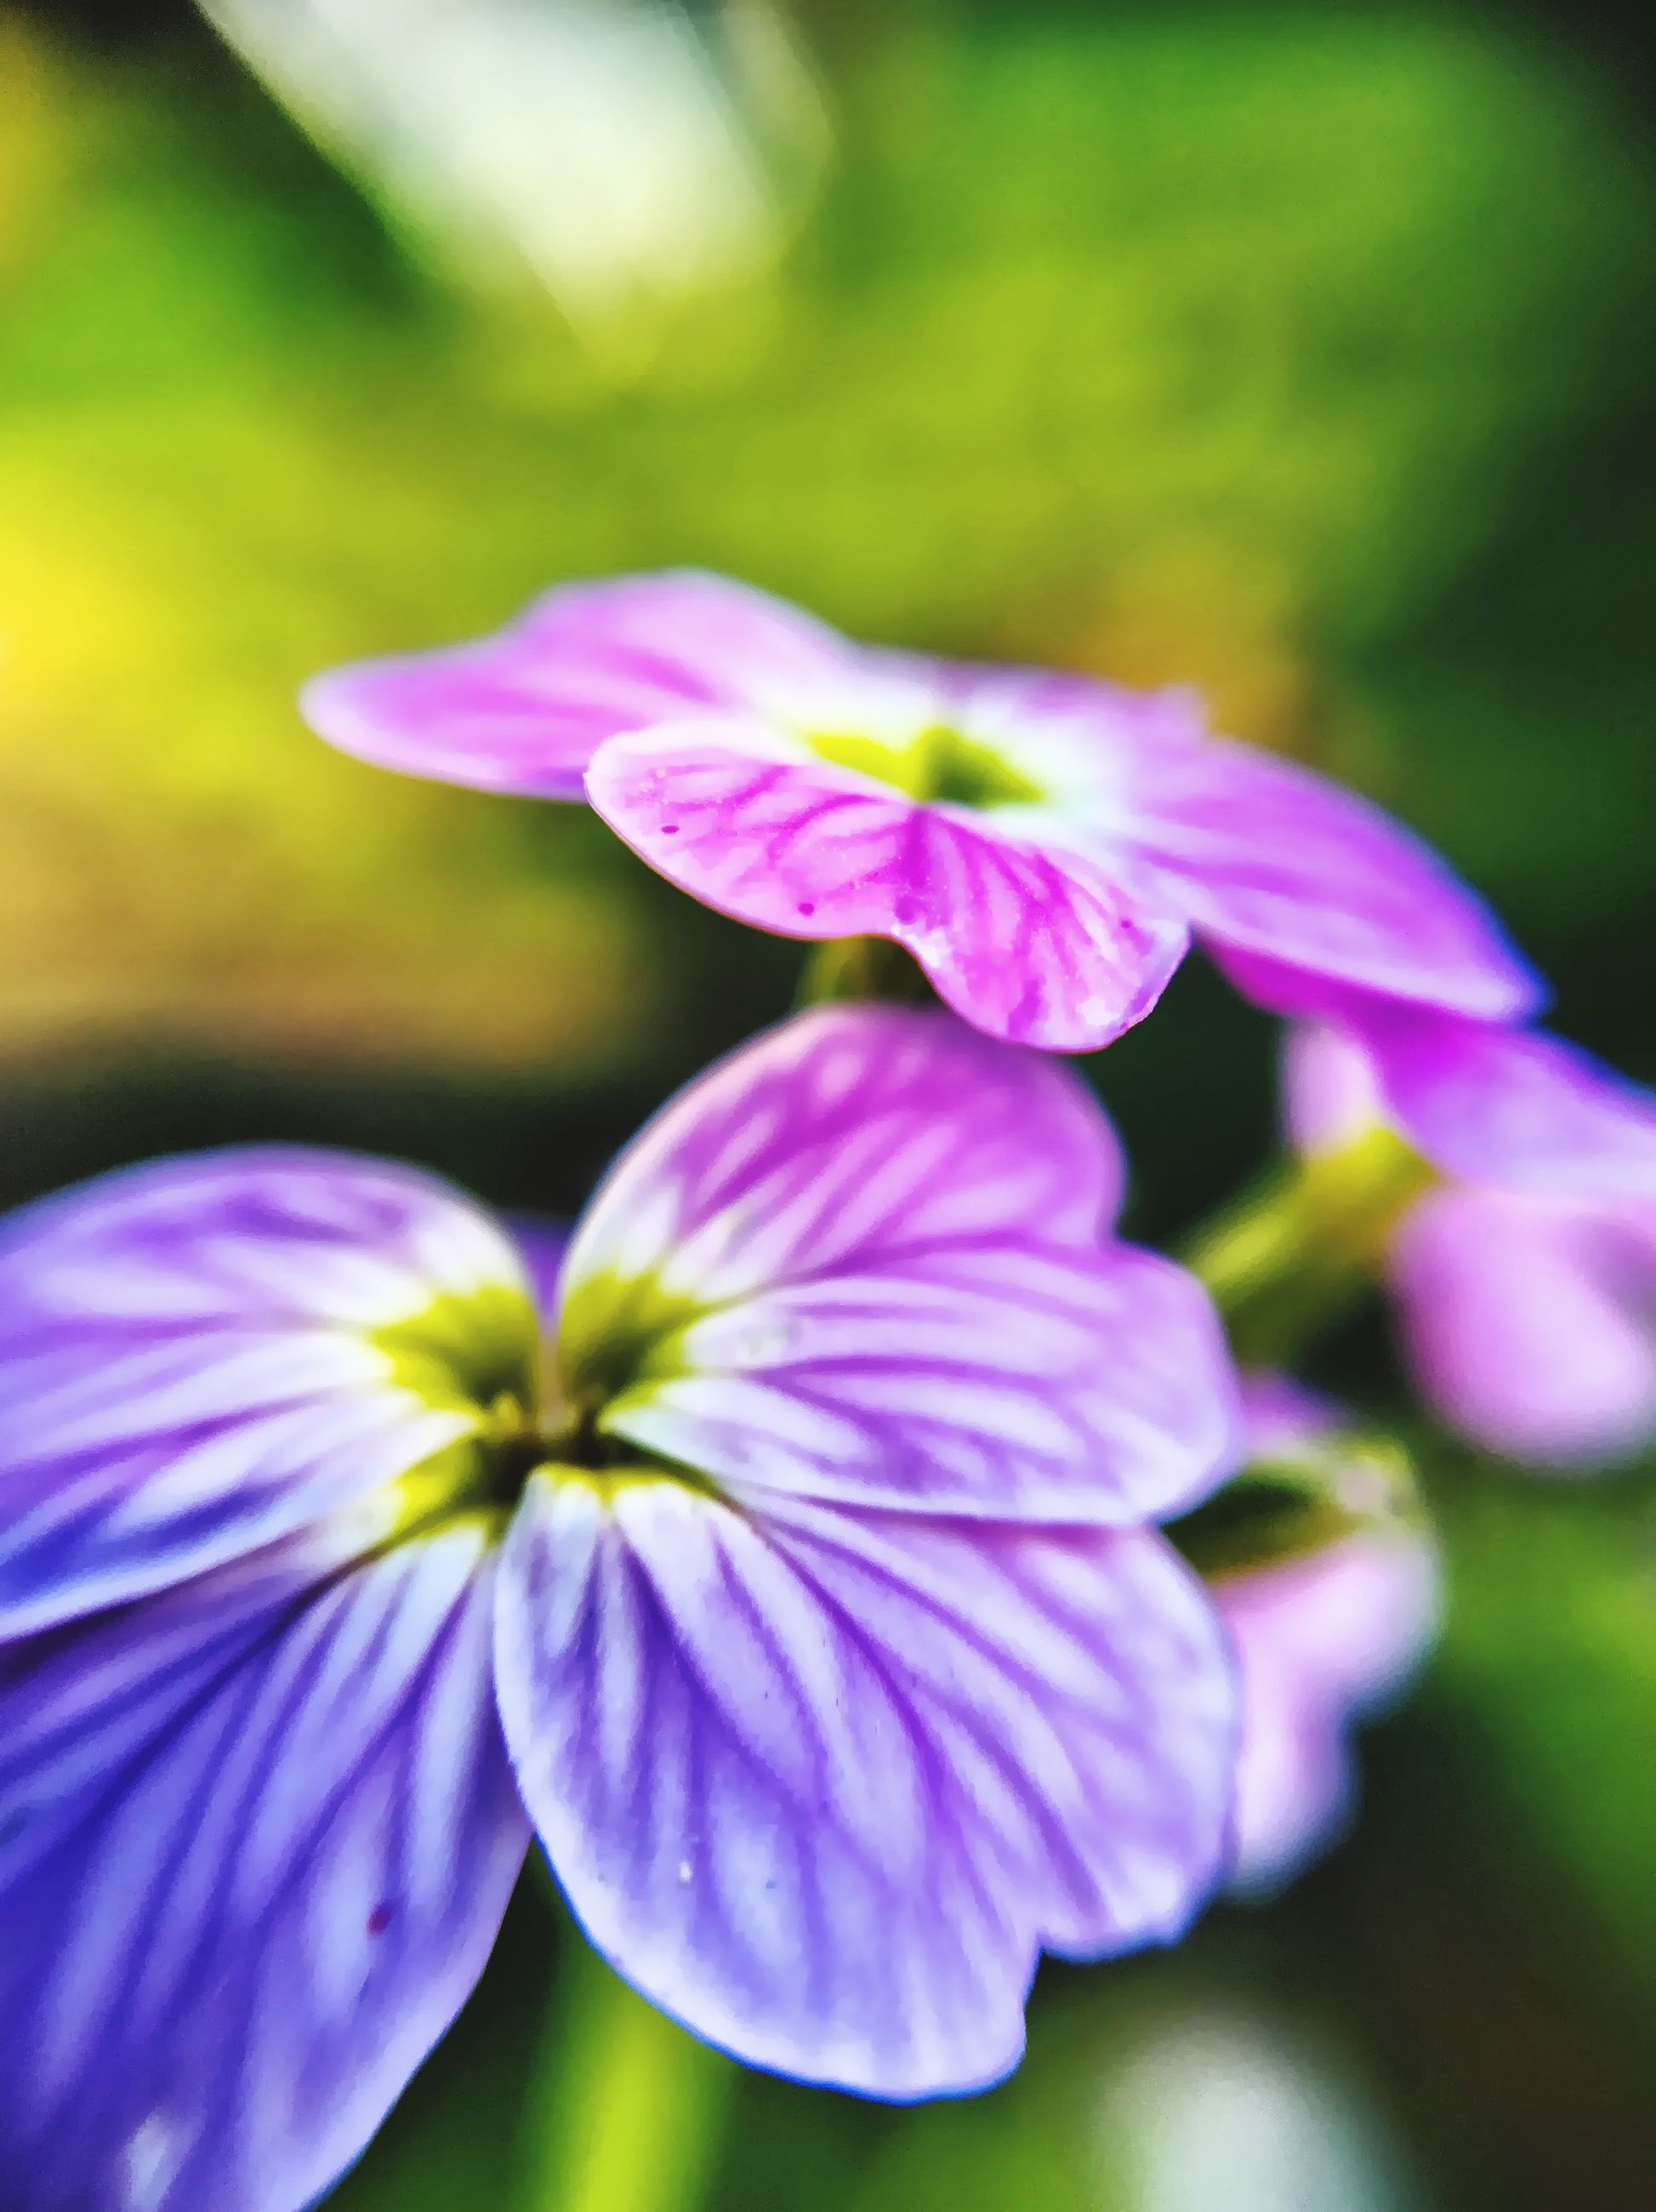 flower, petal, freshness, fragility, growth, flower head, purple, close-up, beauty in nature, focus on foreground, nature, selective focus, blooming, in bloom, plant, blossom, stamen, botany, pollen, springtime